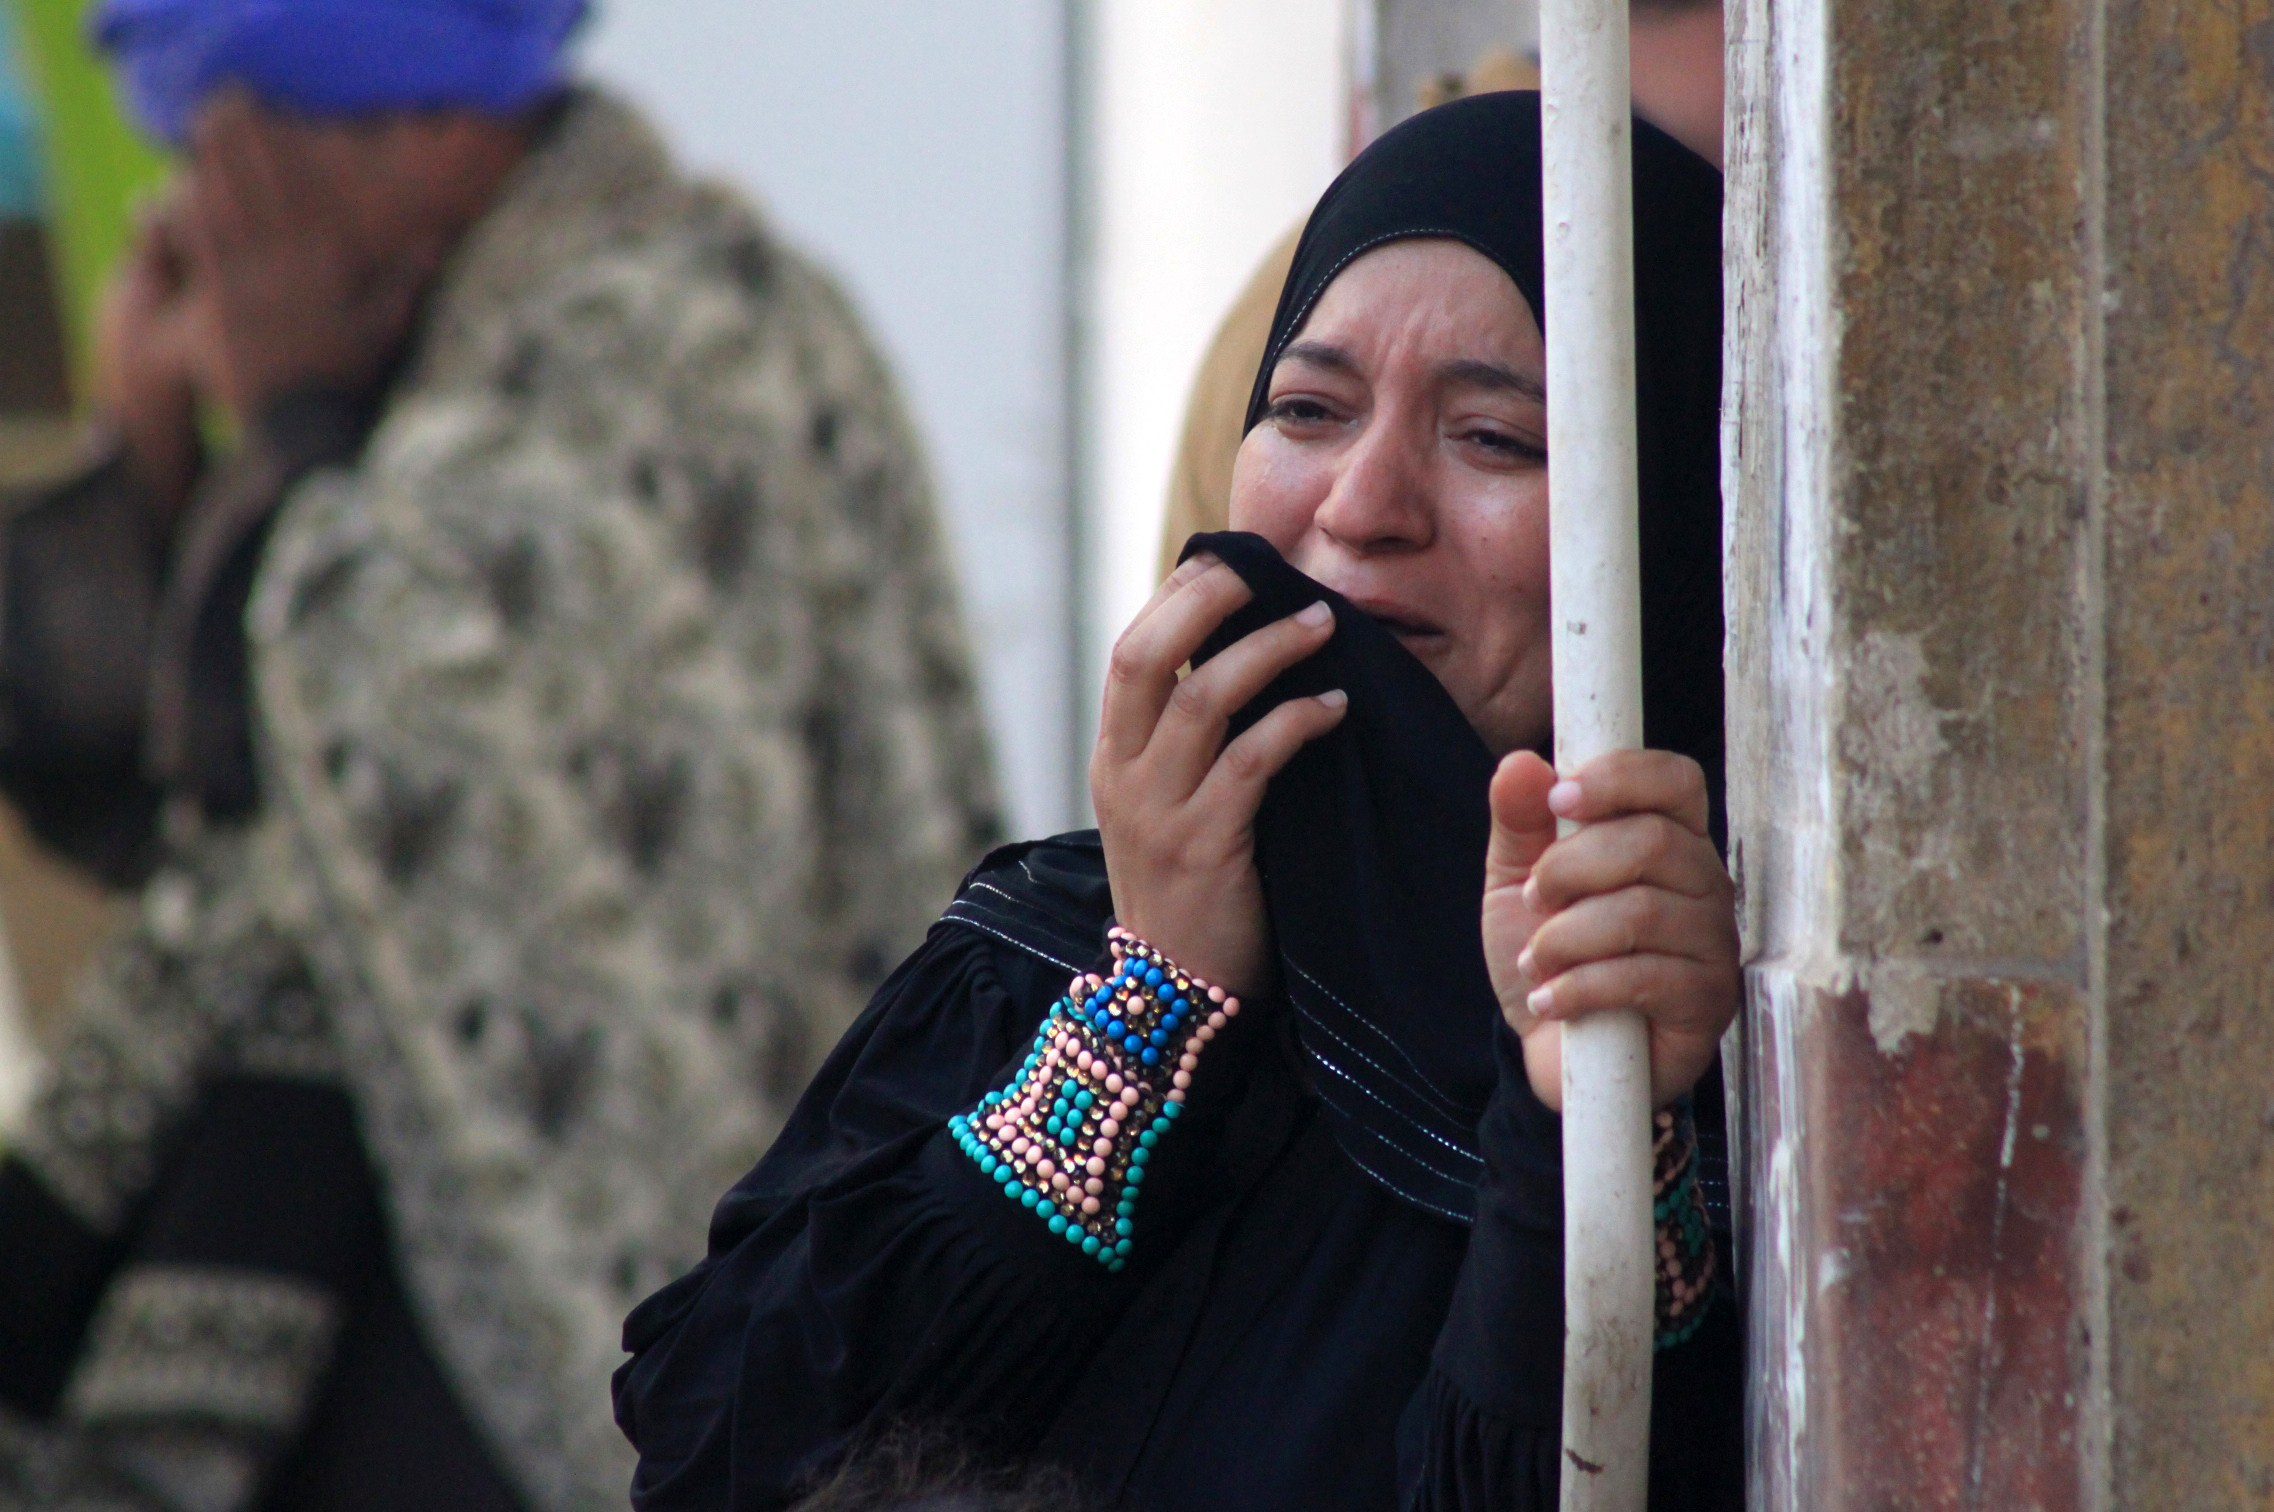 A relative of a supporter of Egyptian ousted Islamist president Mohamed Morsi cries outside the courthouse on March 24, 2014 in the central Egyptian city of Minya, after the court ordered the execution of 529 Morsi supporters after only two hearings. The unprecedented verdict, amid an extensive crackdown on Morsi supporters, is likely to be overturned on appeal, legal experts said.    (AFP PHOTO / STR)